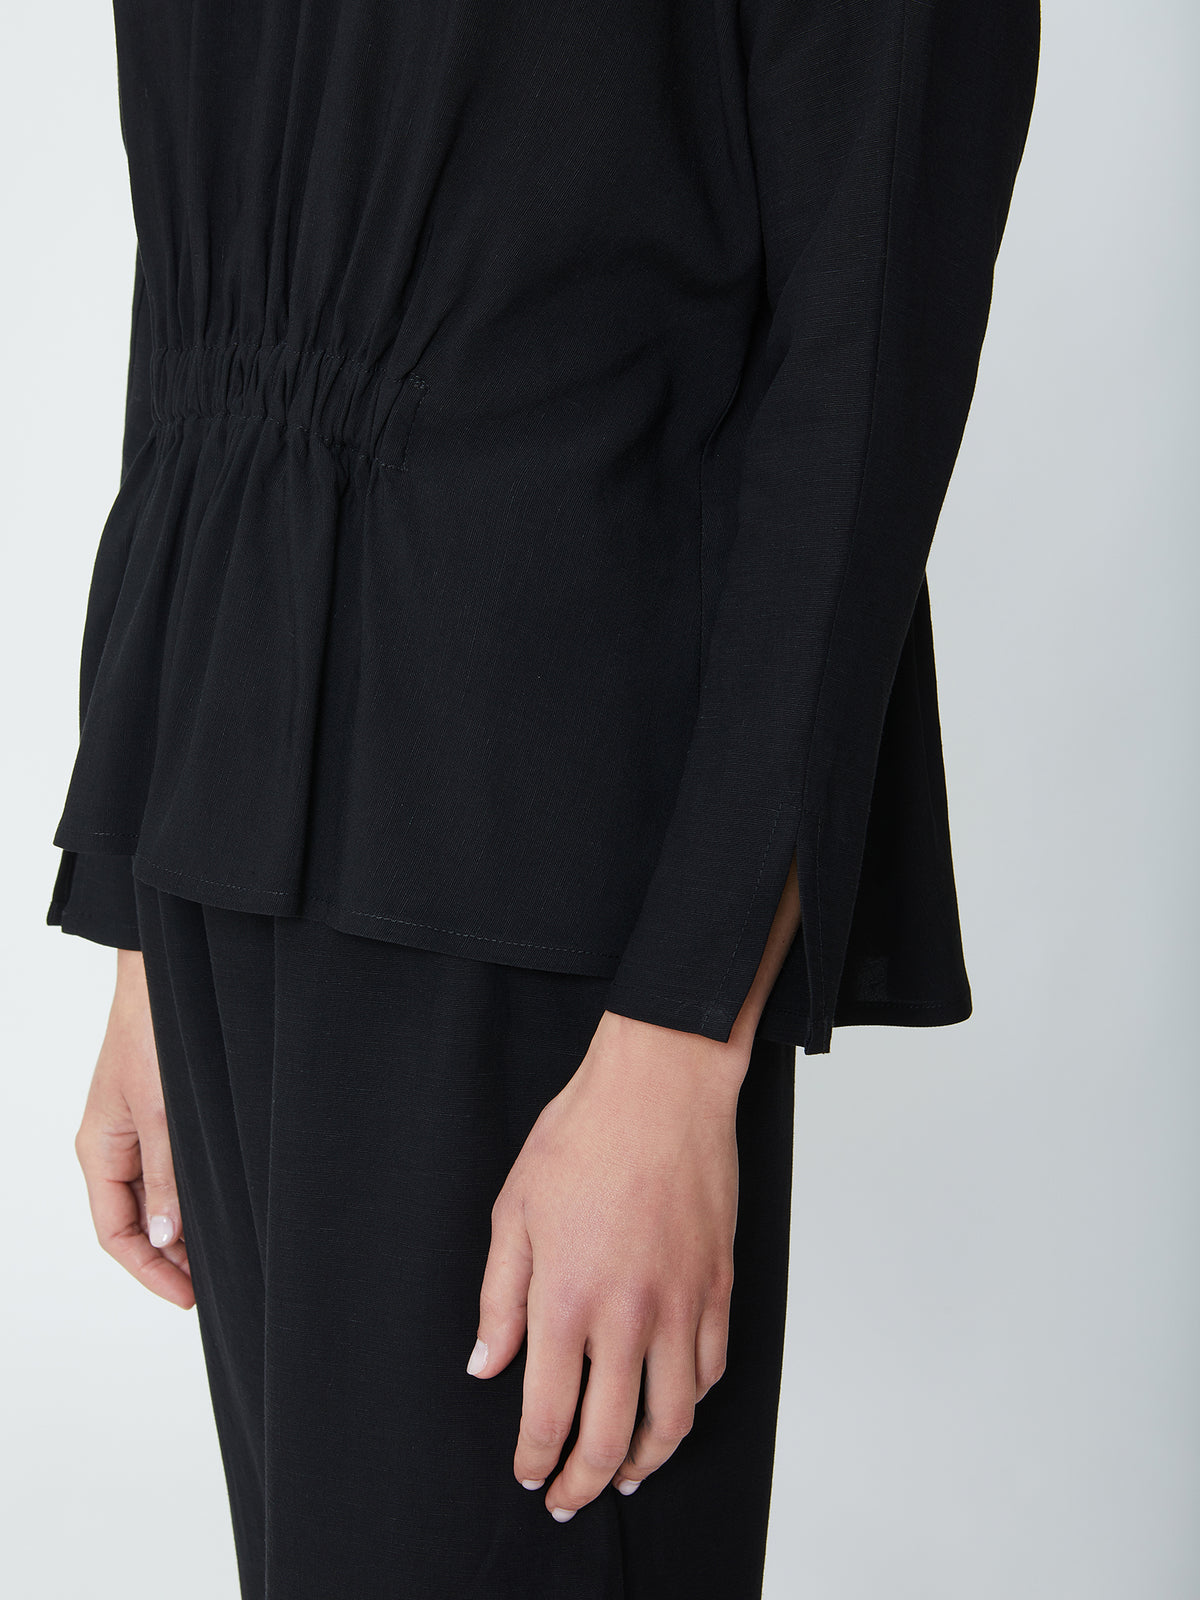 Wildwood - Lush Top - Black